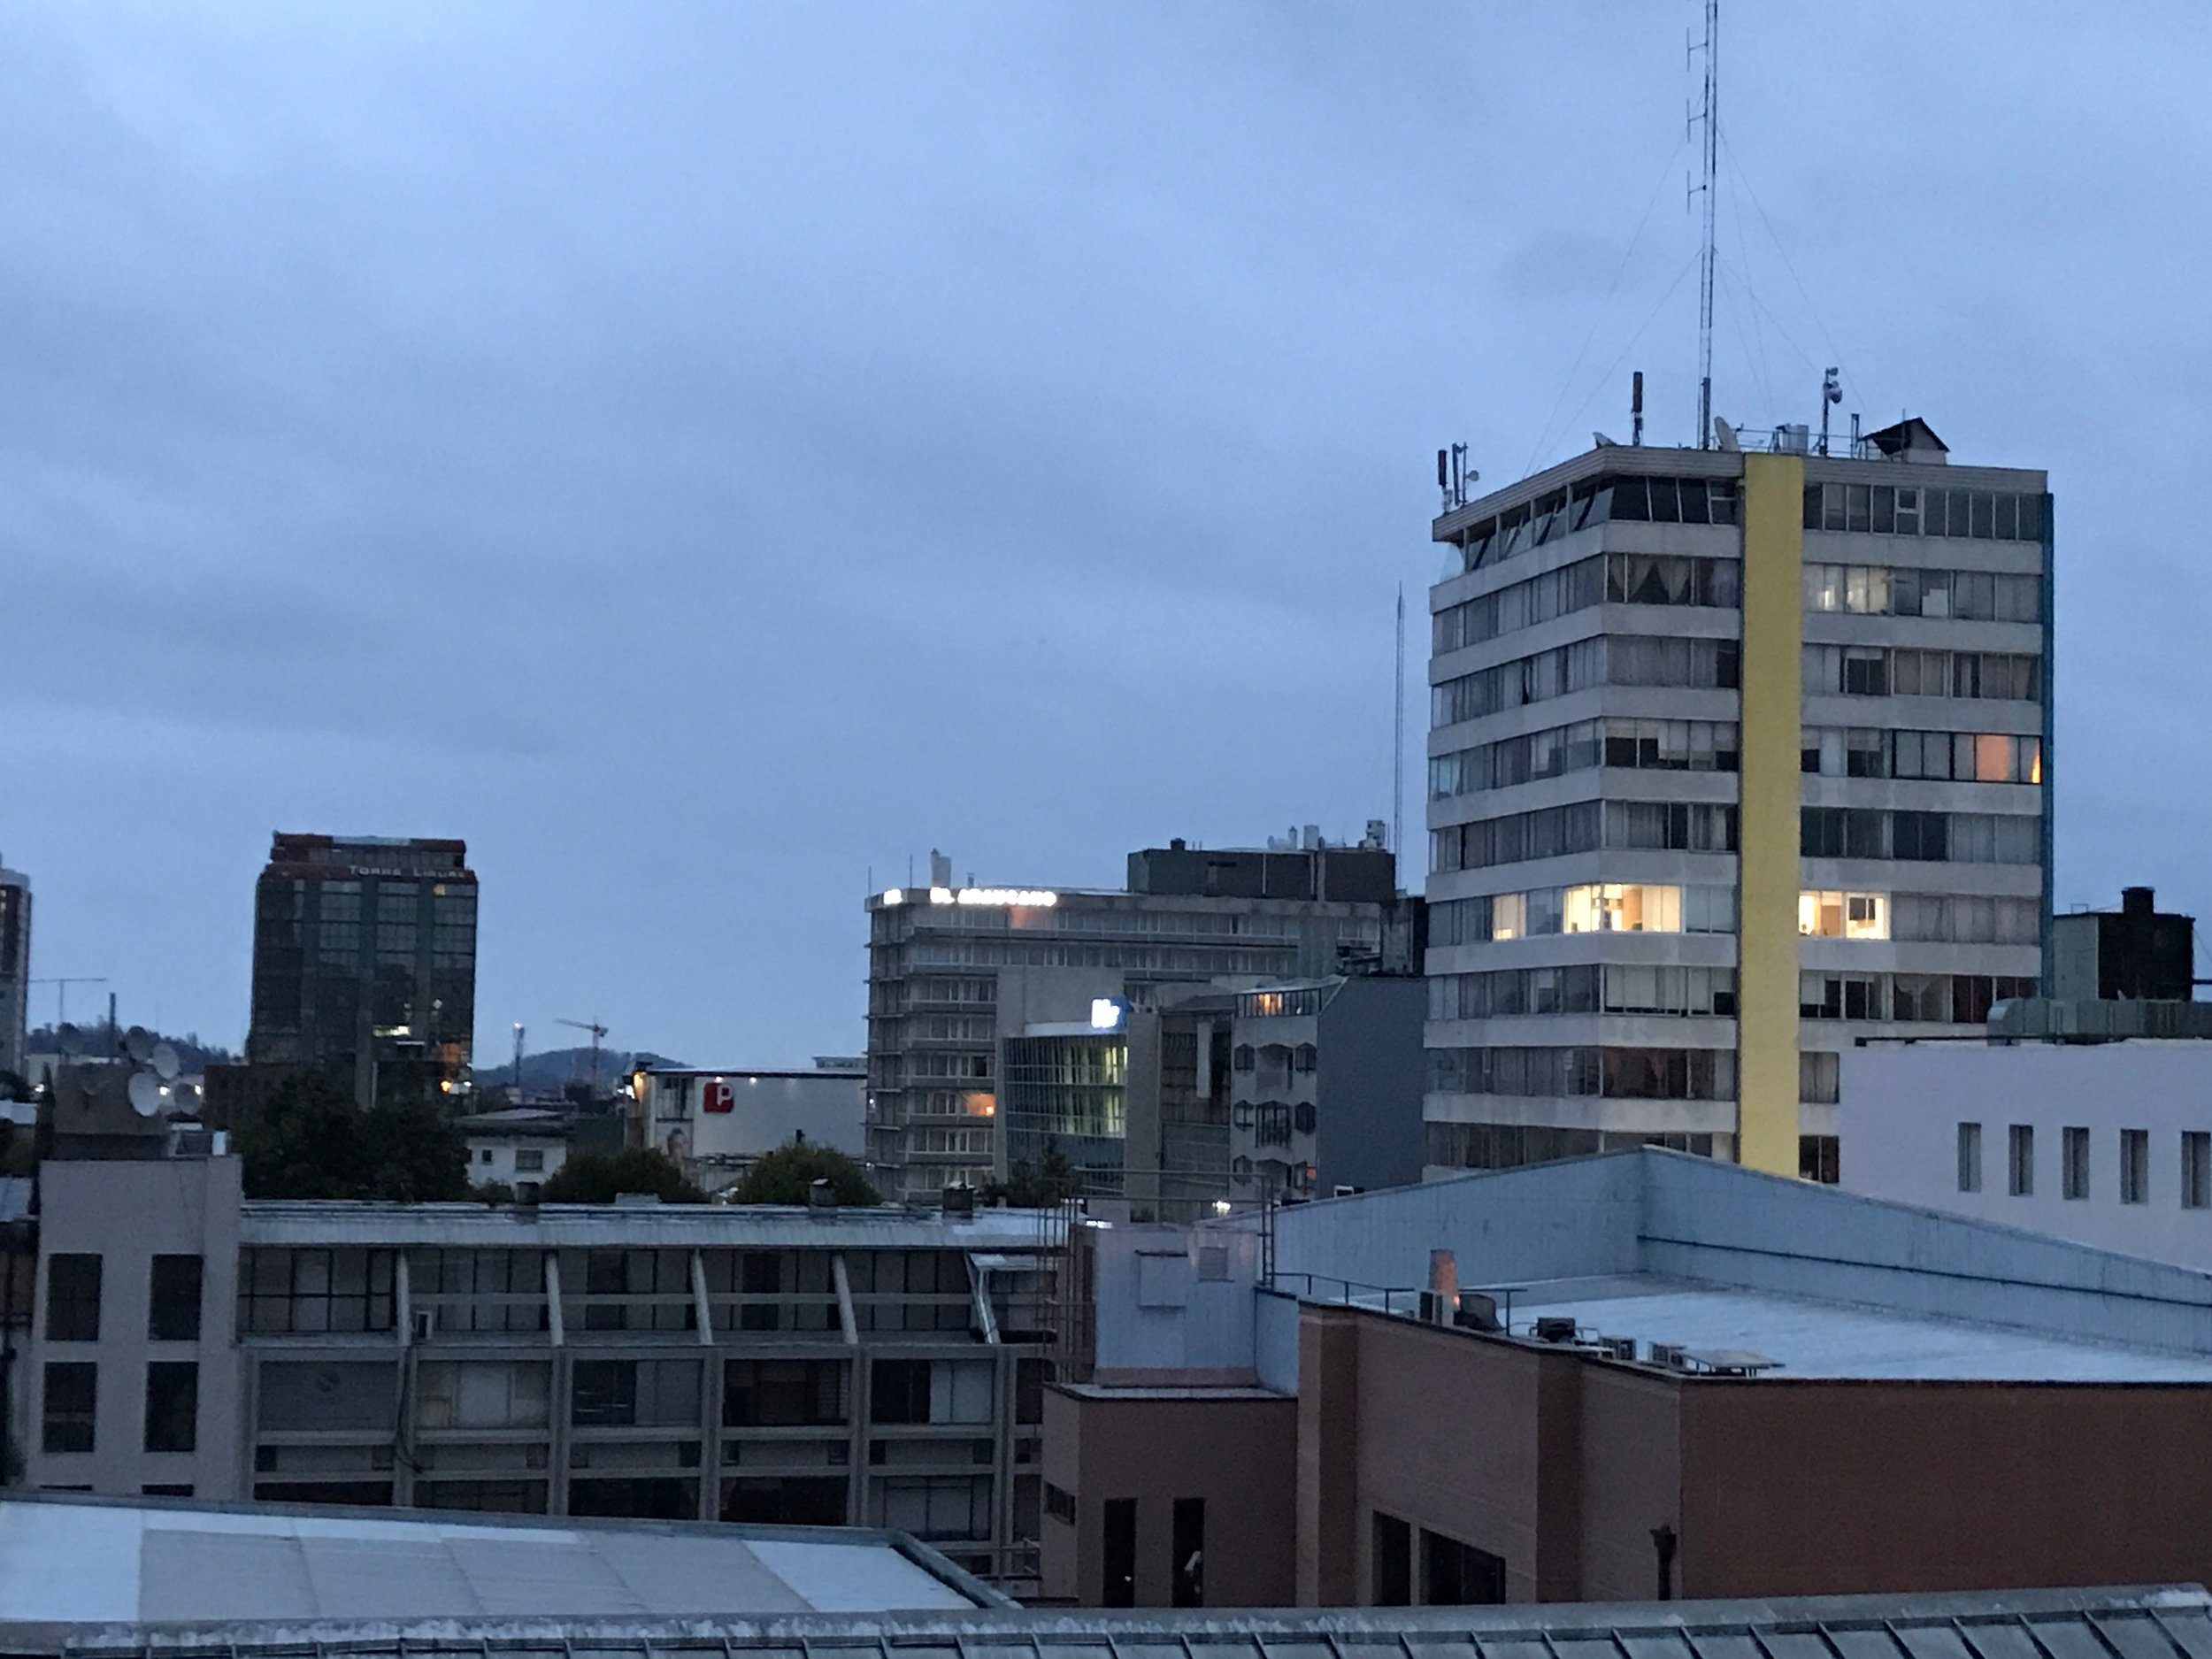 Rainy Concepción on Censo Day